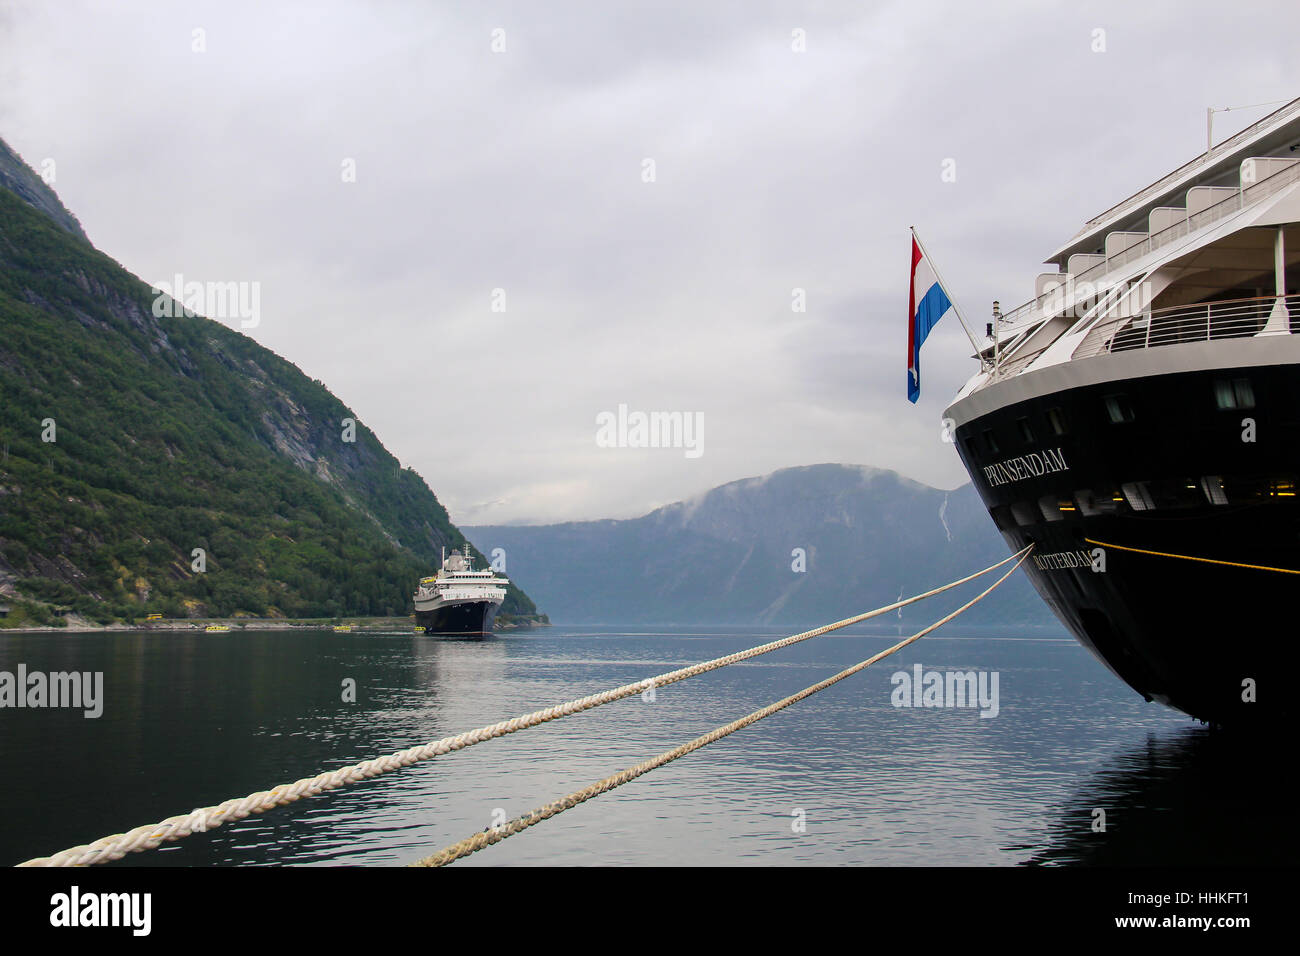 The stern of Holland America's cruise ship 'Prinsendam' while moored in Eidfjord, Norway. - Stock Image